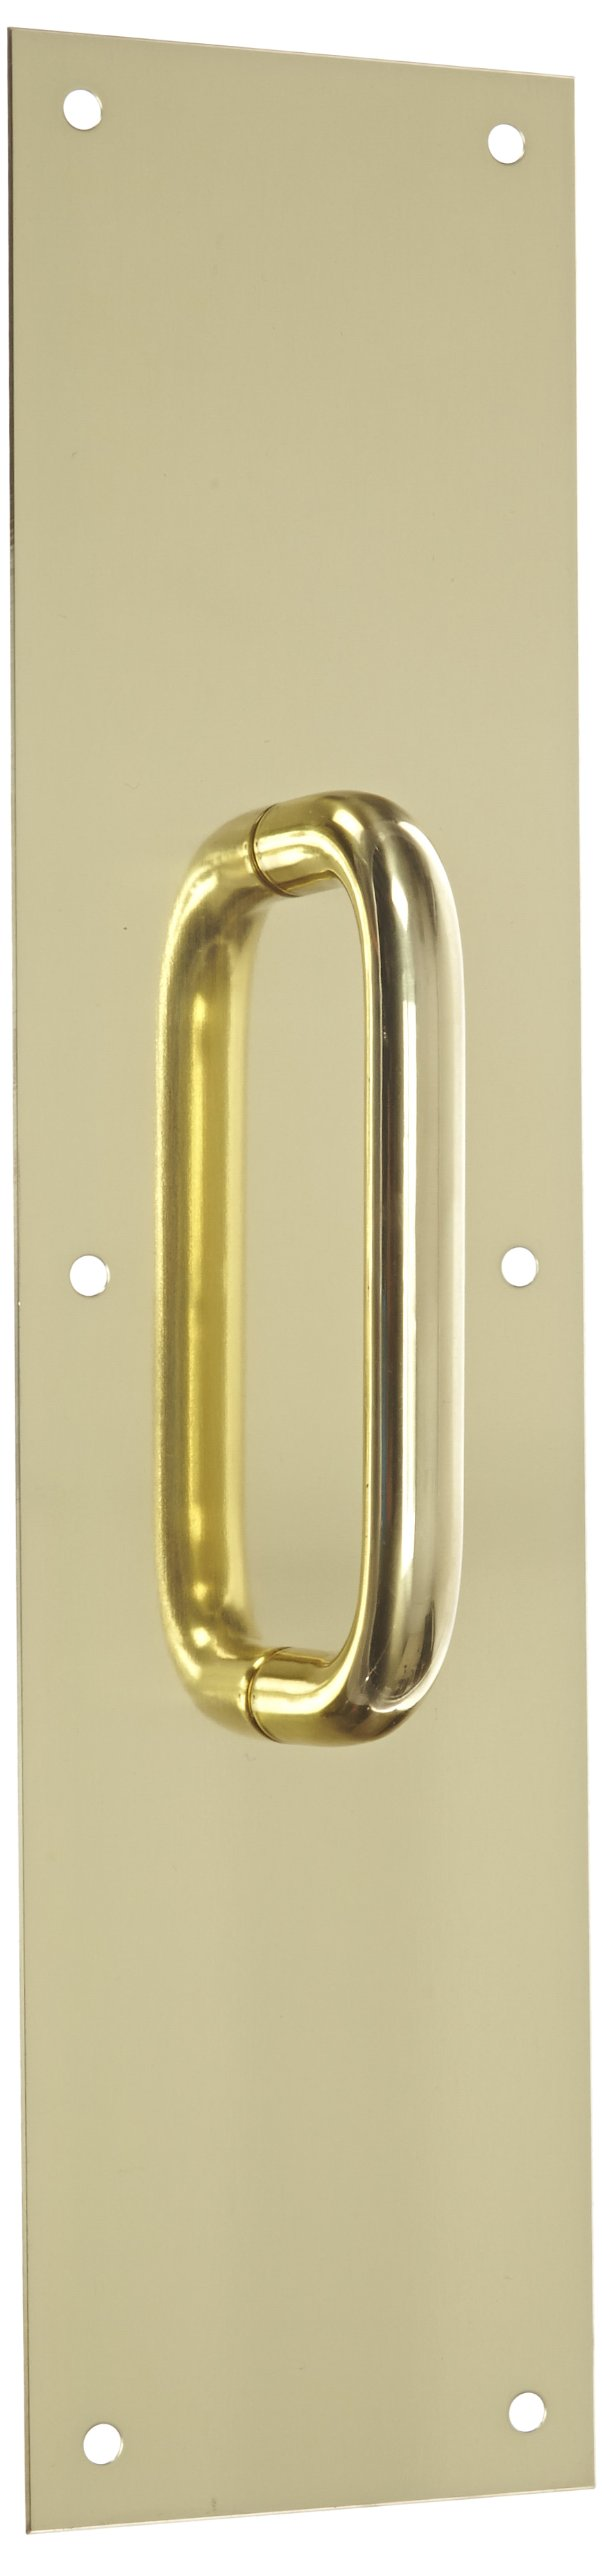 "Rockwood 102 X 70C.3 Brass Pull Plate, 16"" Height x 4"" Width x 0.050"" Thick, 5-1/2"" Center-to-Center Handle Length, 5/8"" Pull Diameter, Polished Clear Coated Finish"